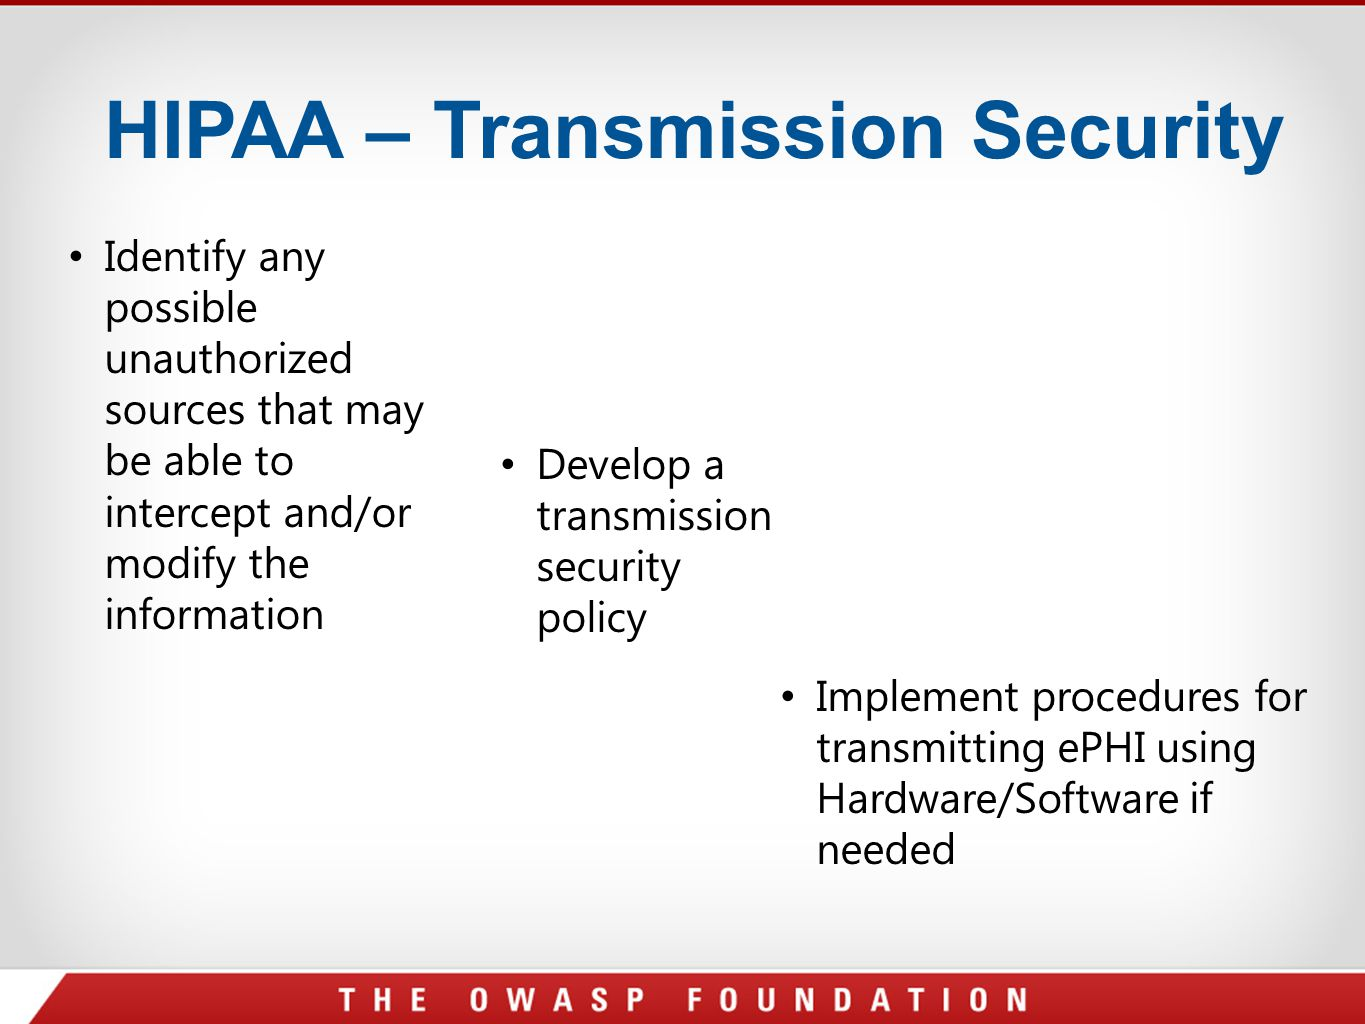 HIPAA – Transmission Security